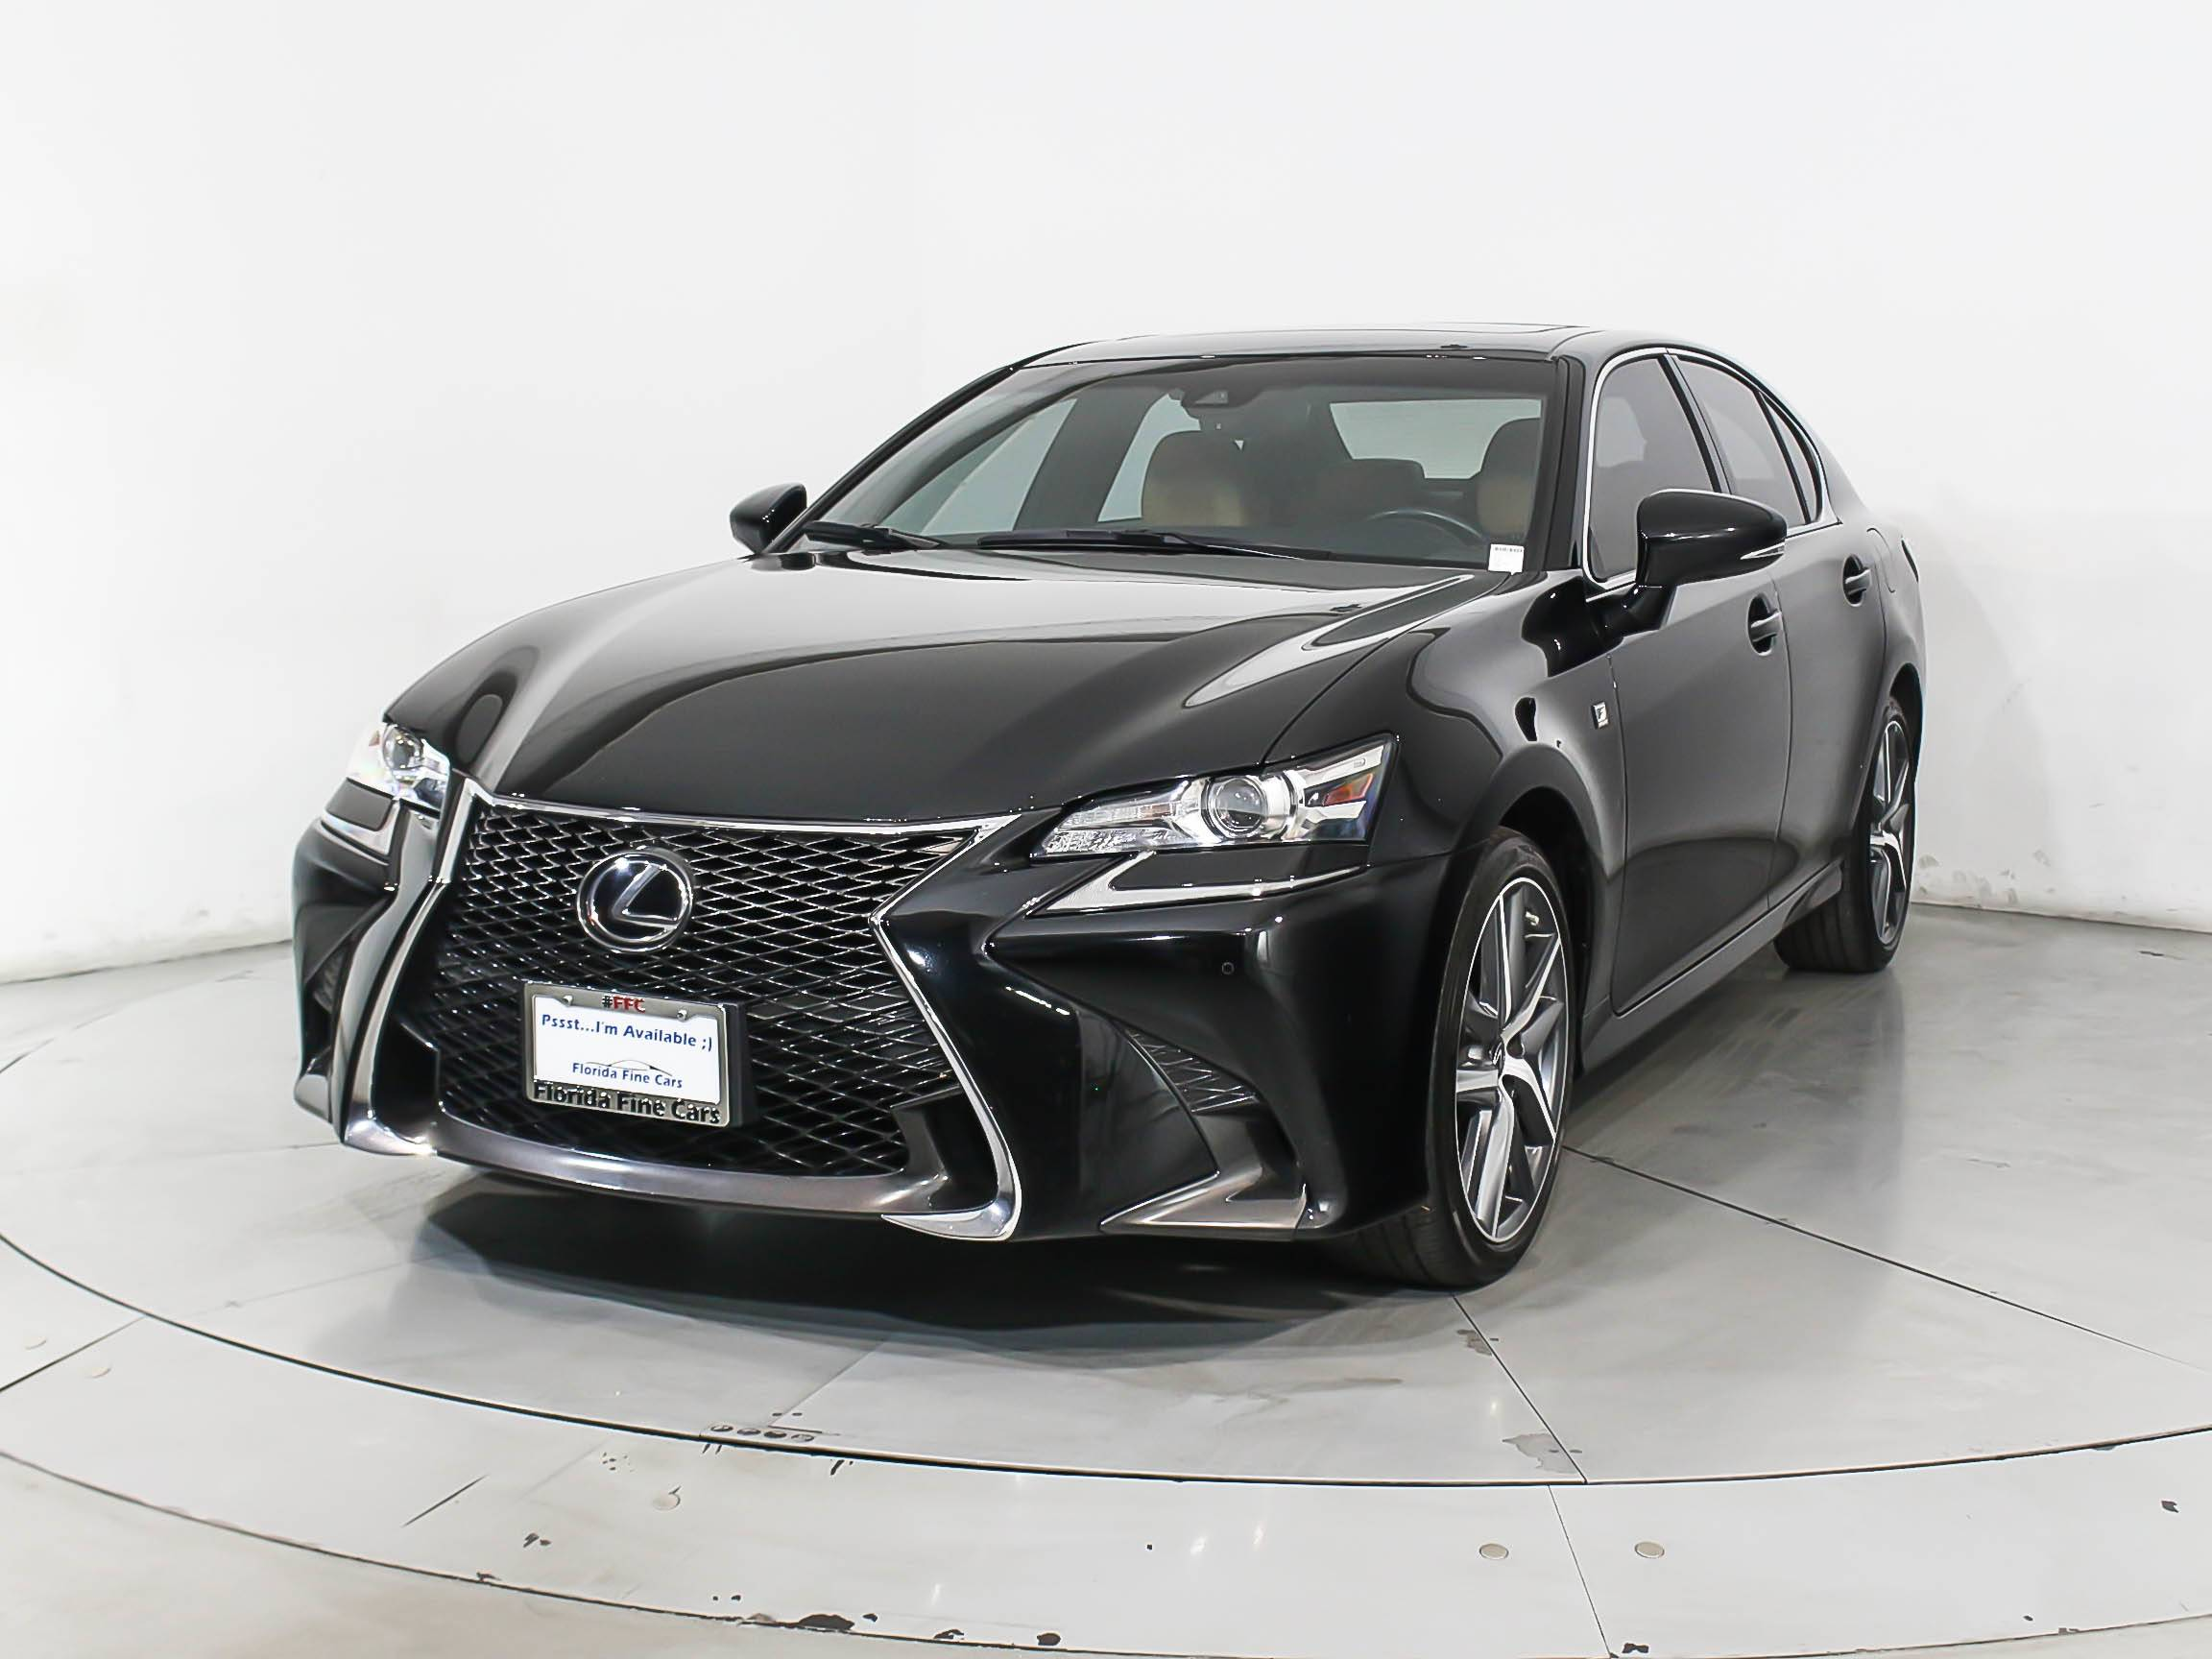 Used 2016 LEXUS GS 350 F Sport Awd Sedan for sale in MIAMI